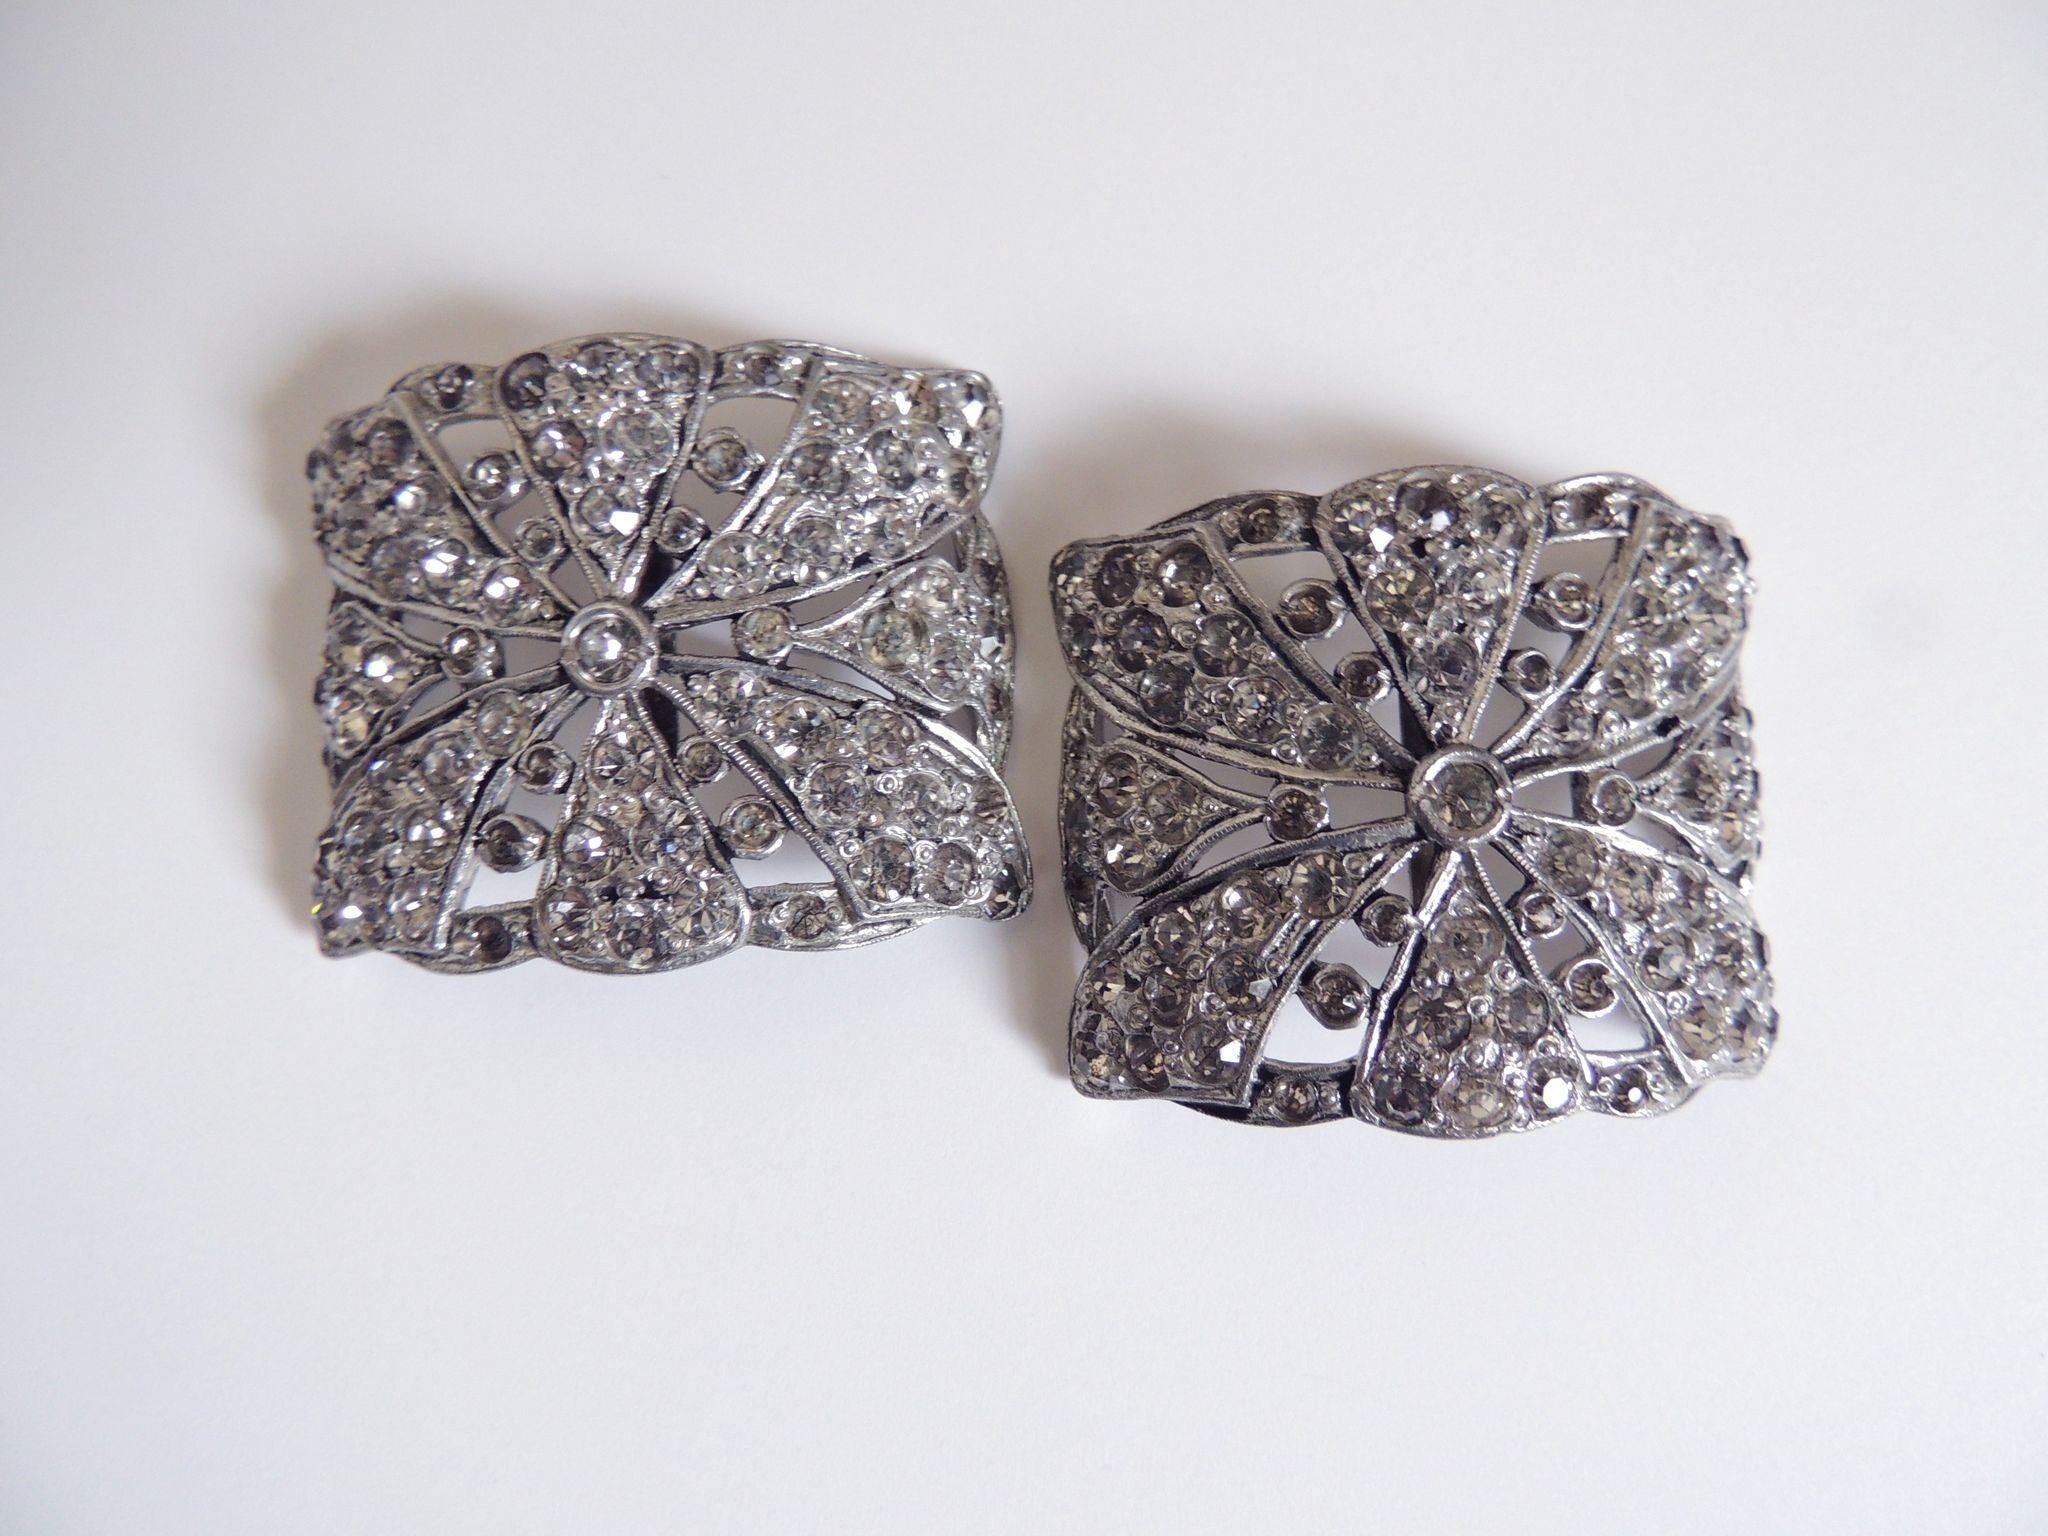 Original Issue Belt Buckles